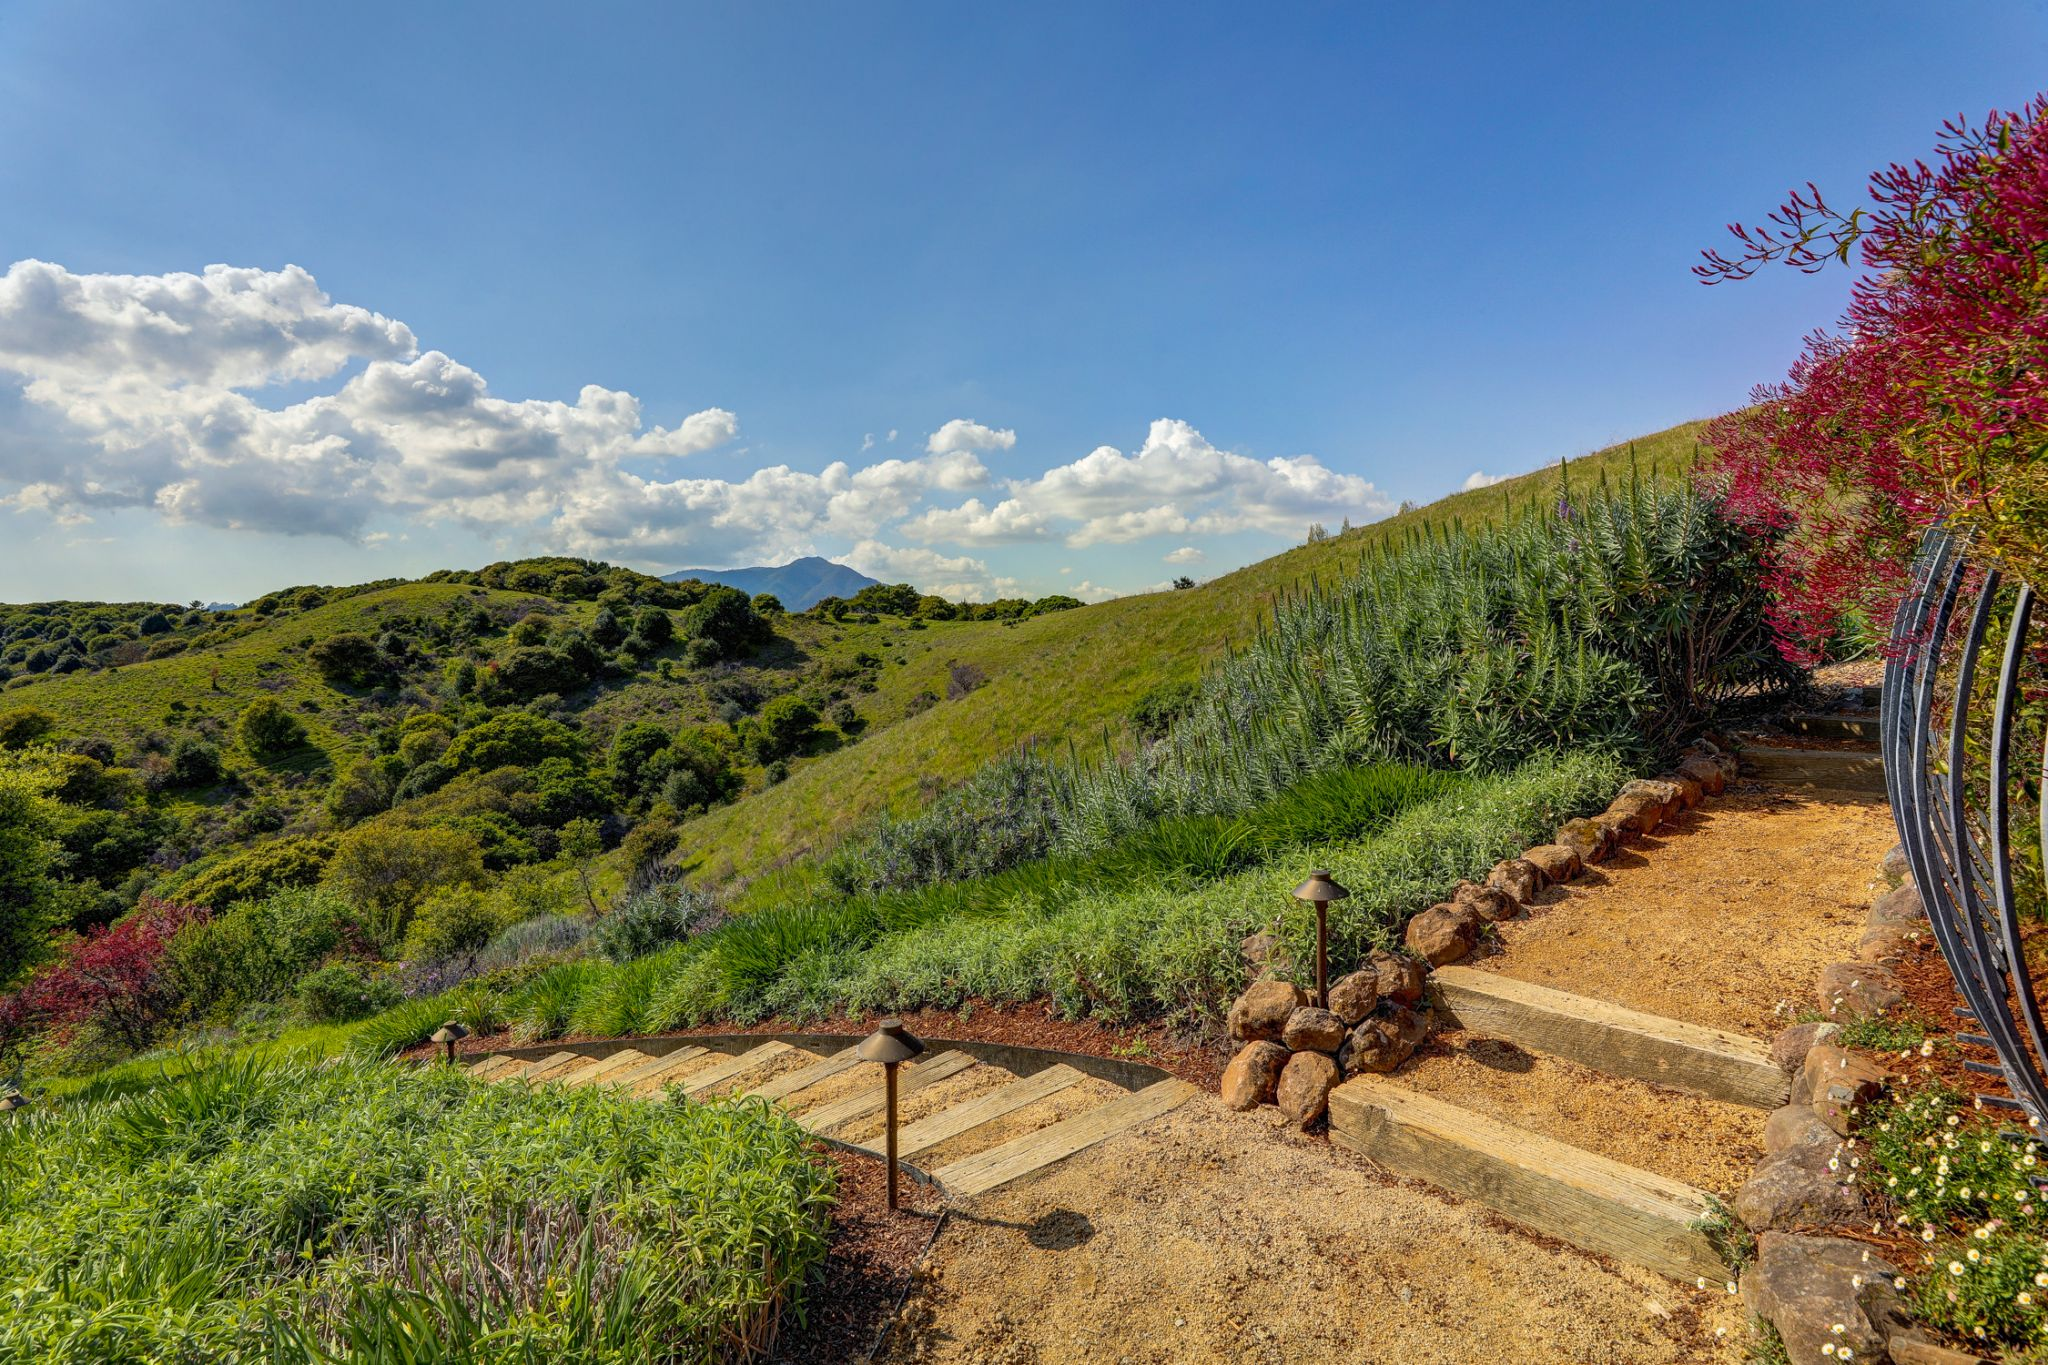 The iconic landscape and views of Marin County seem to be your only neighbors, but in fact the home isn't far from Ring Mountain, The Cove Shopping Center, or Hwy 101.